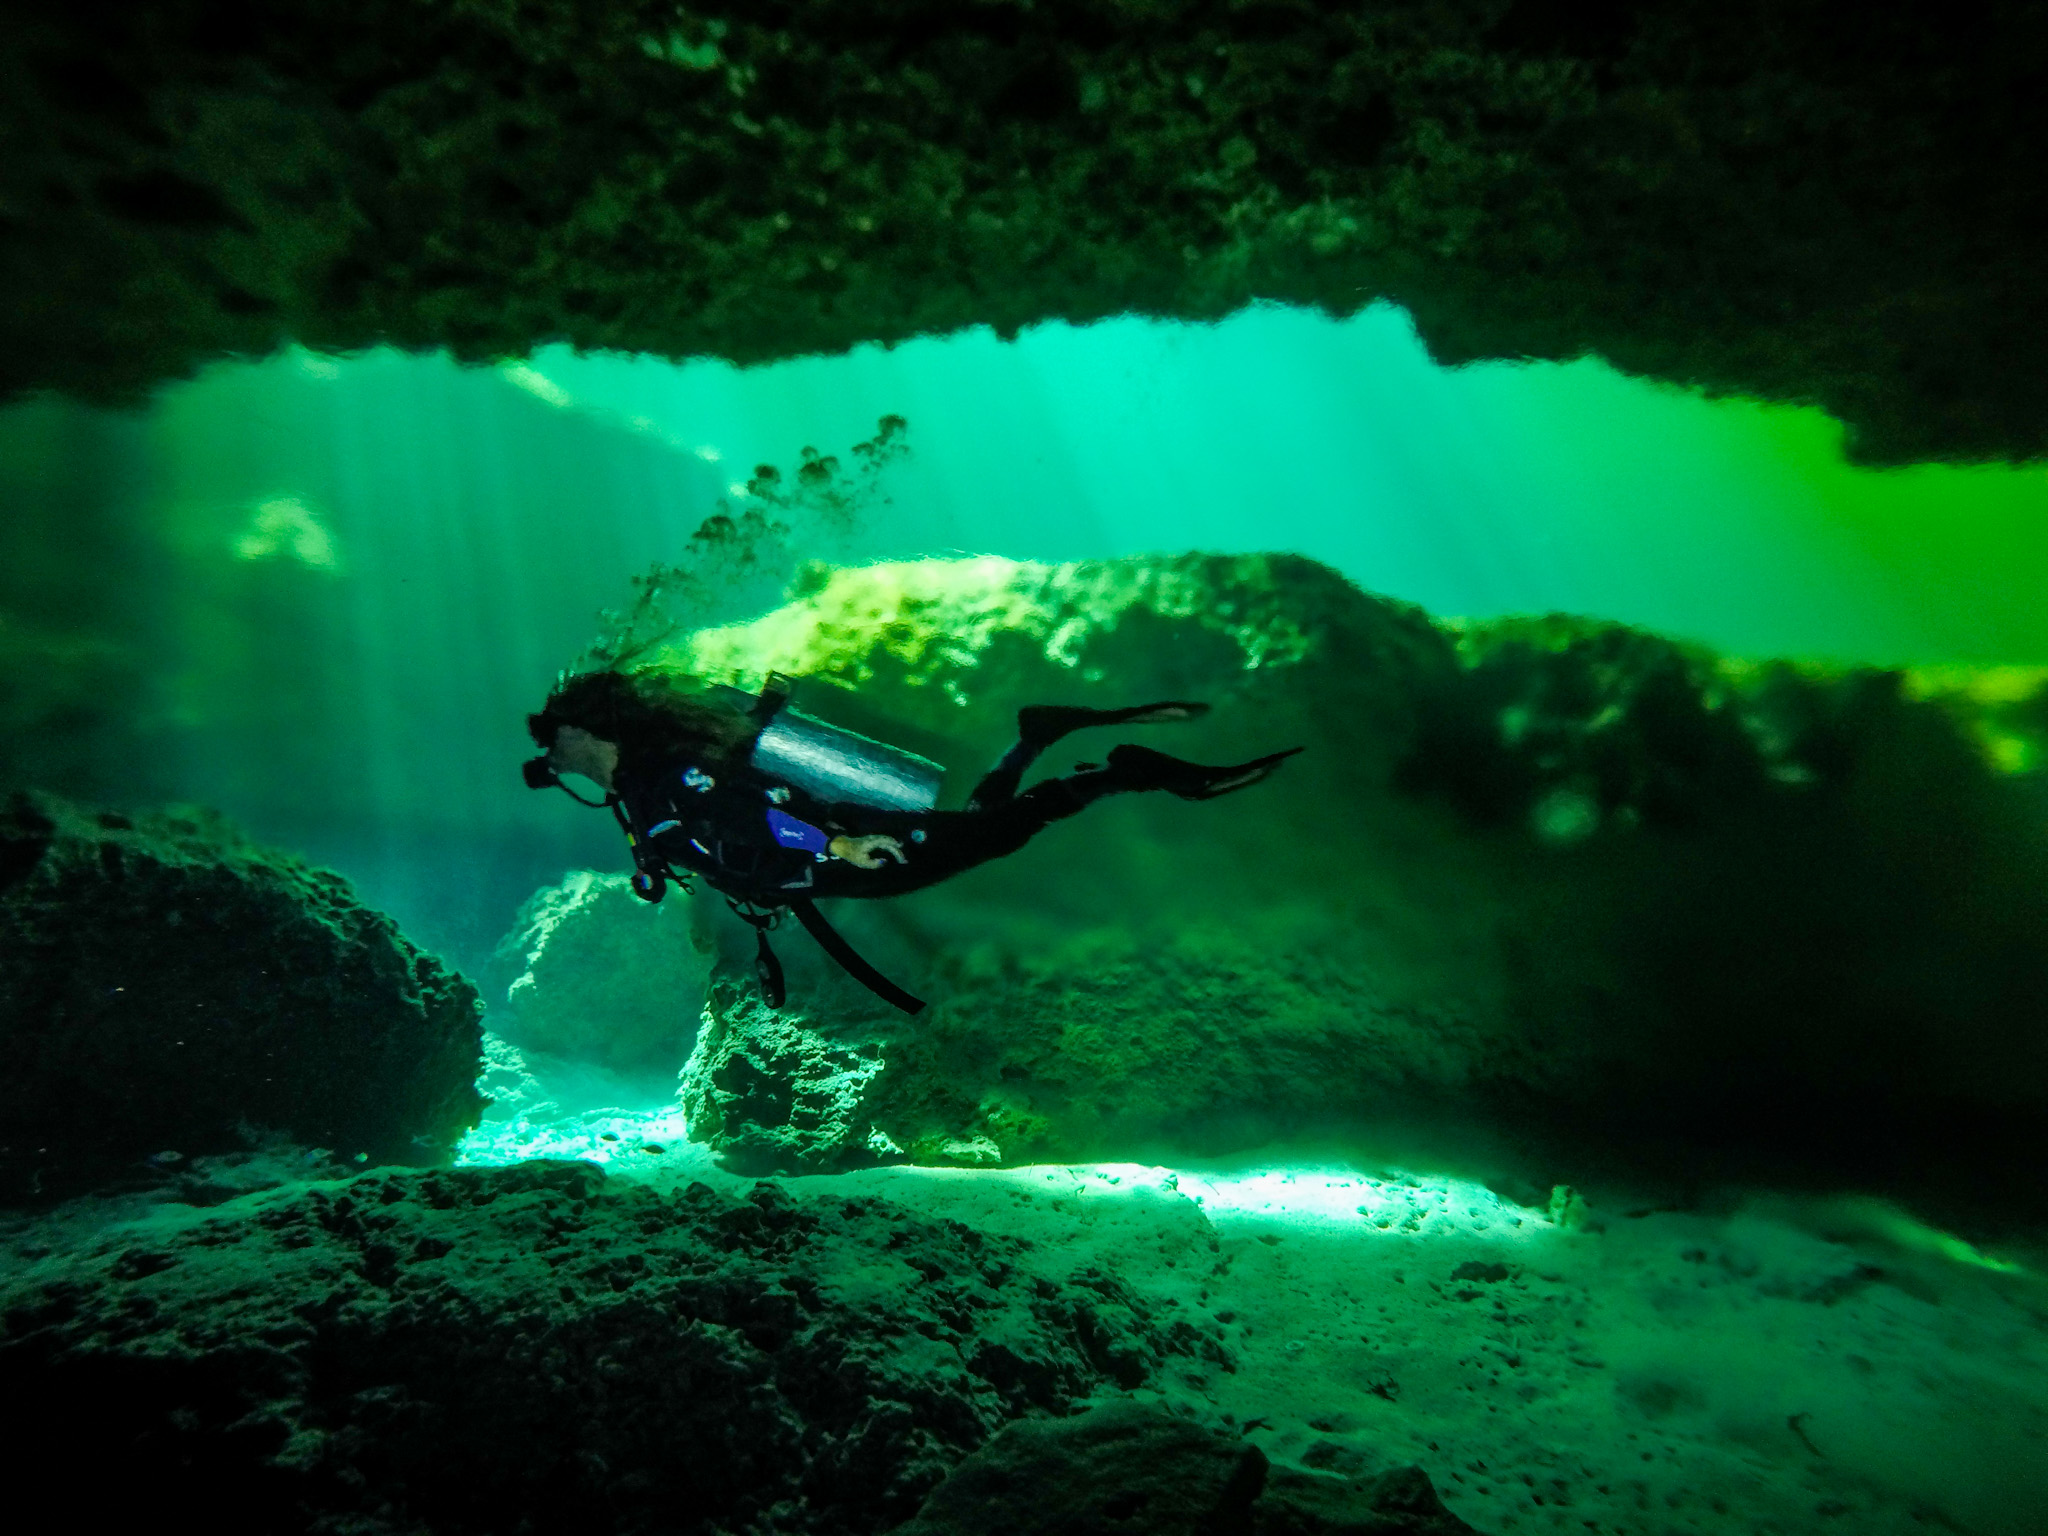 Cenote diving in Tulum. Photo: @Tulum.breathtaking